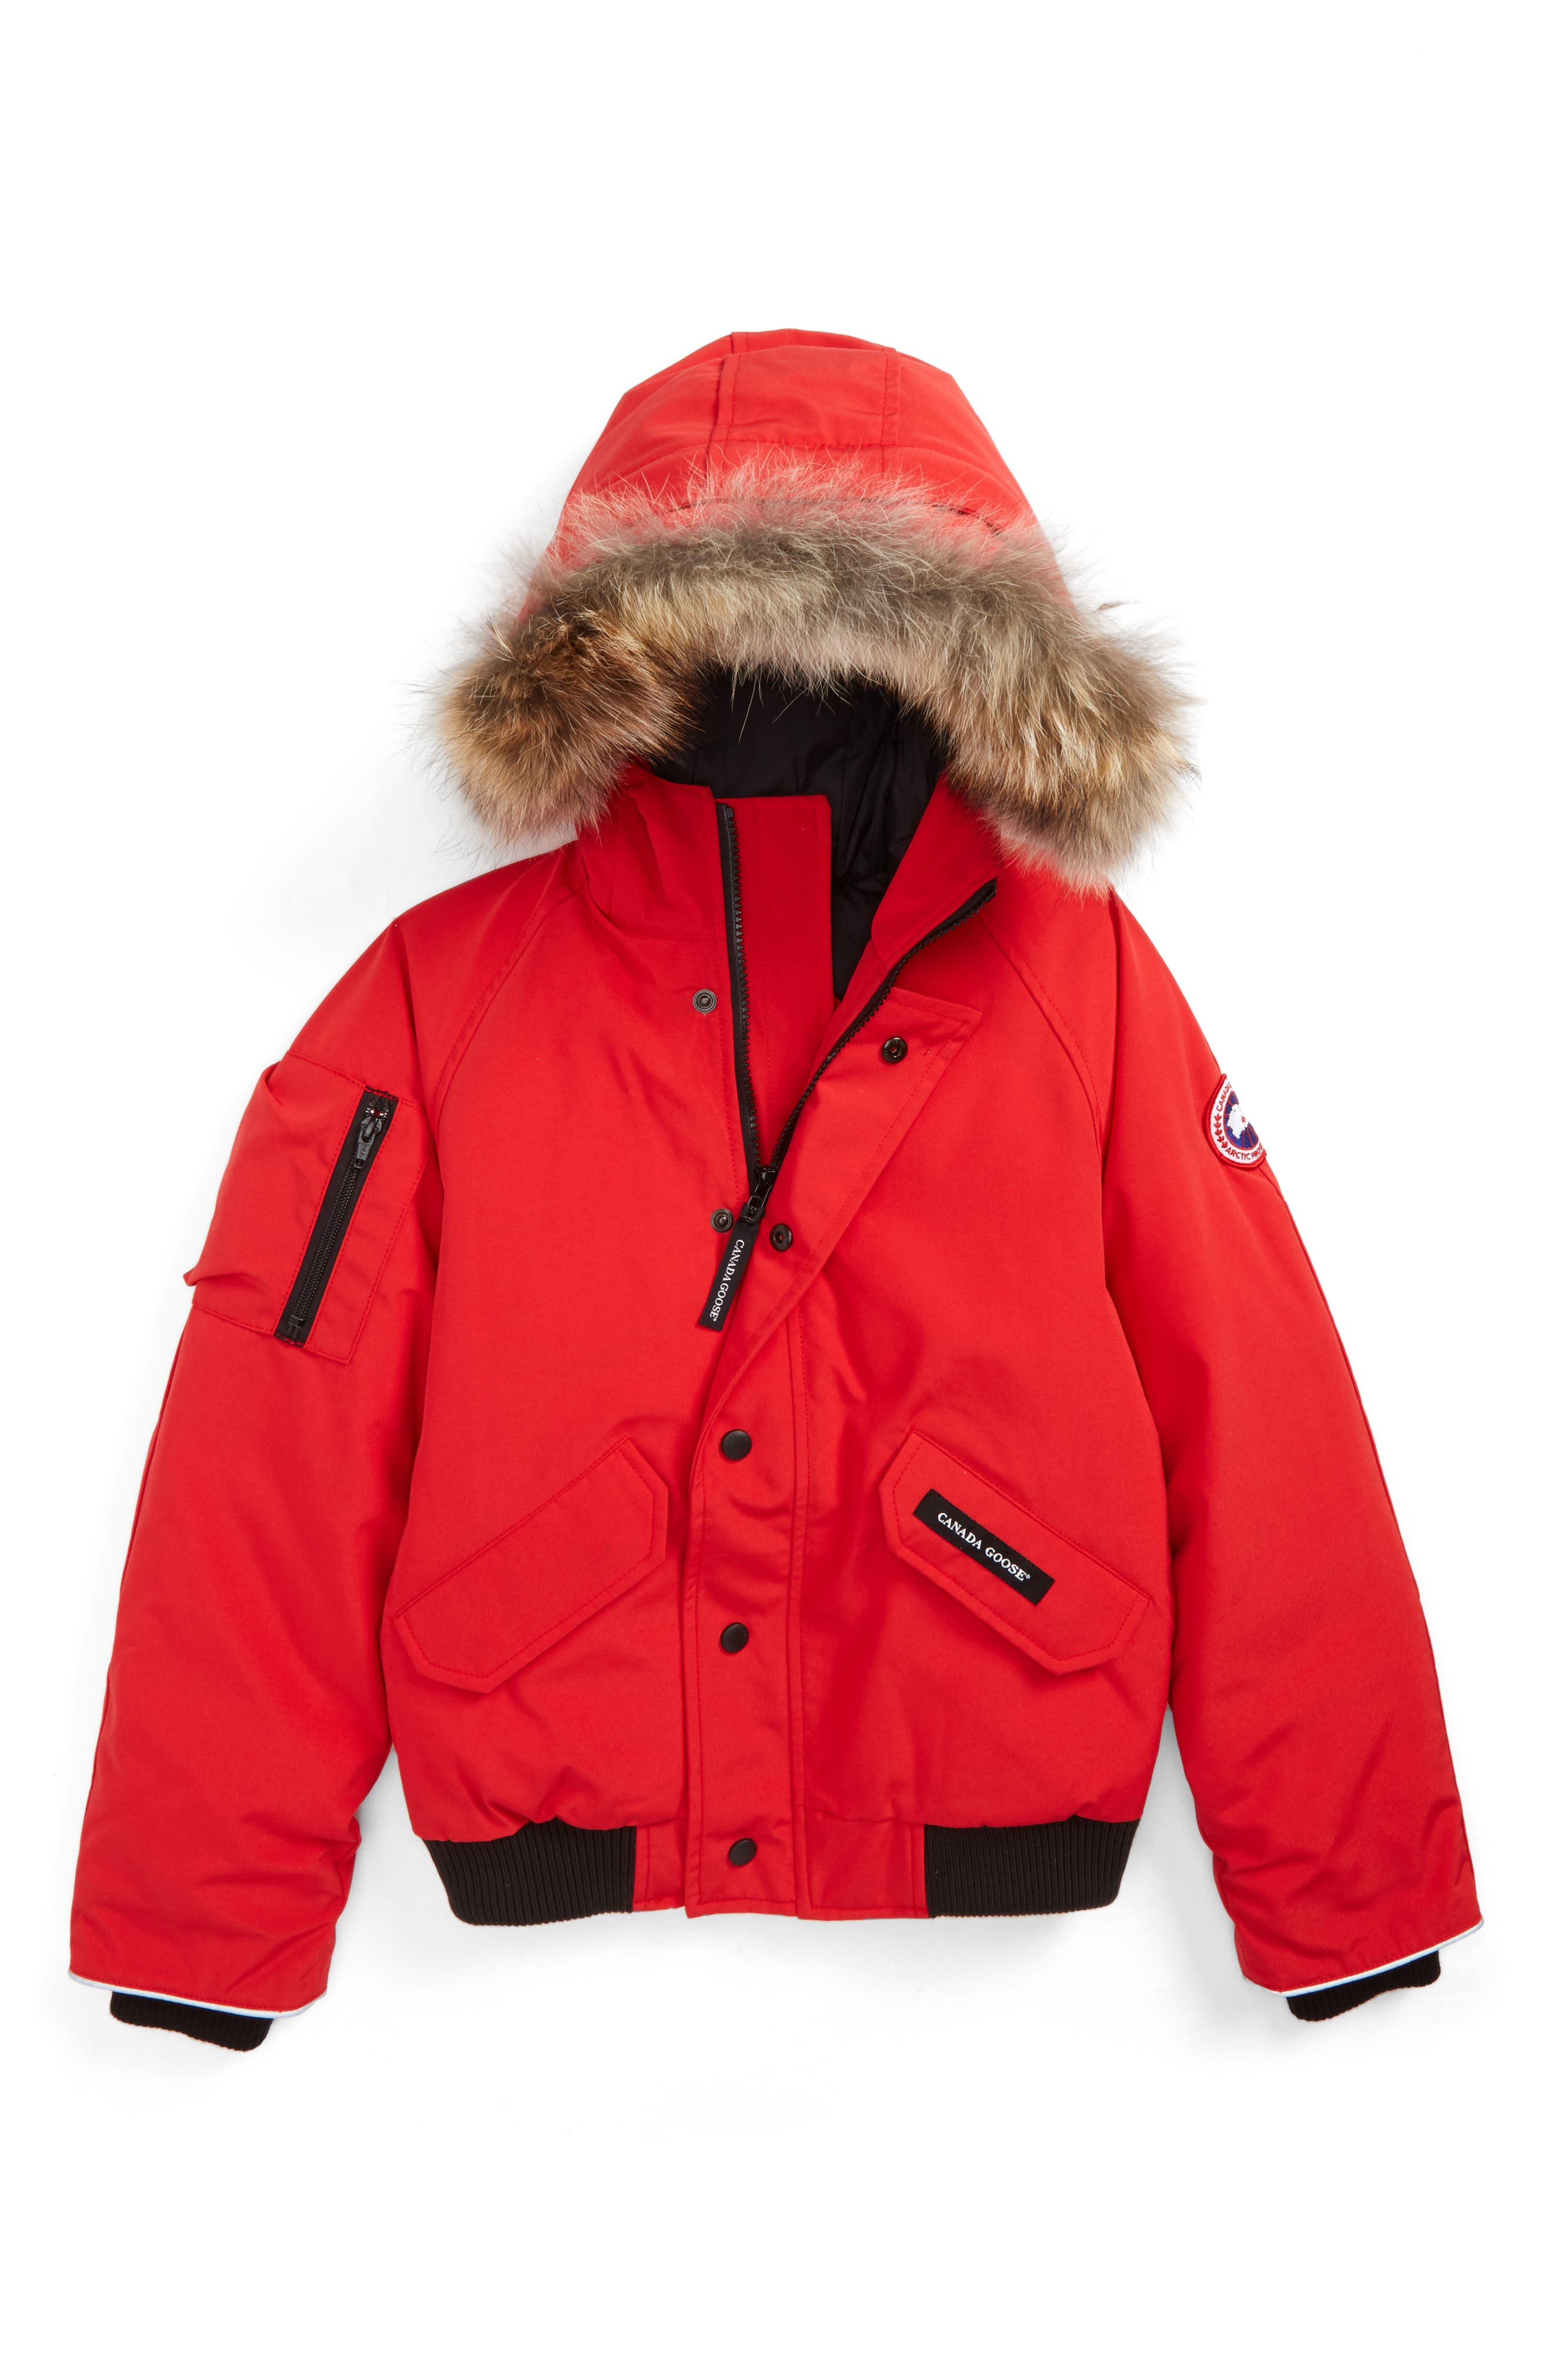 'Rundle' Down Bomber Jacket with Genuine Coyote Fur Trim,                             Alternate thumbnail 2, color,                             RED